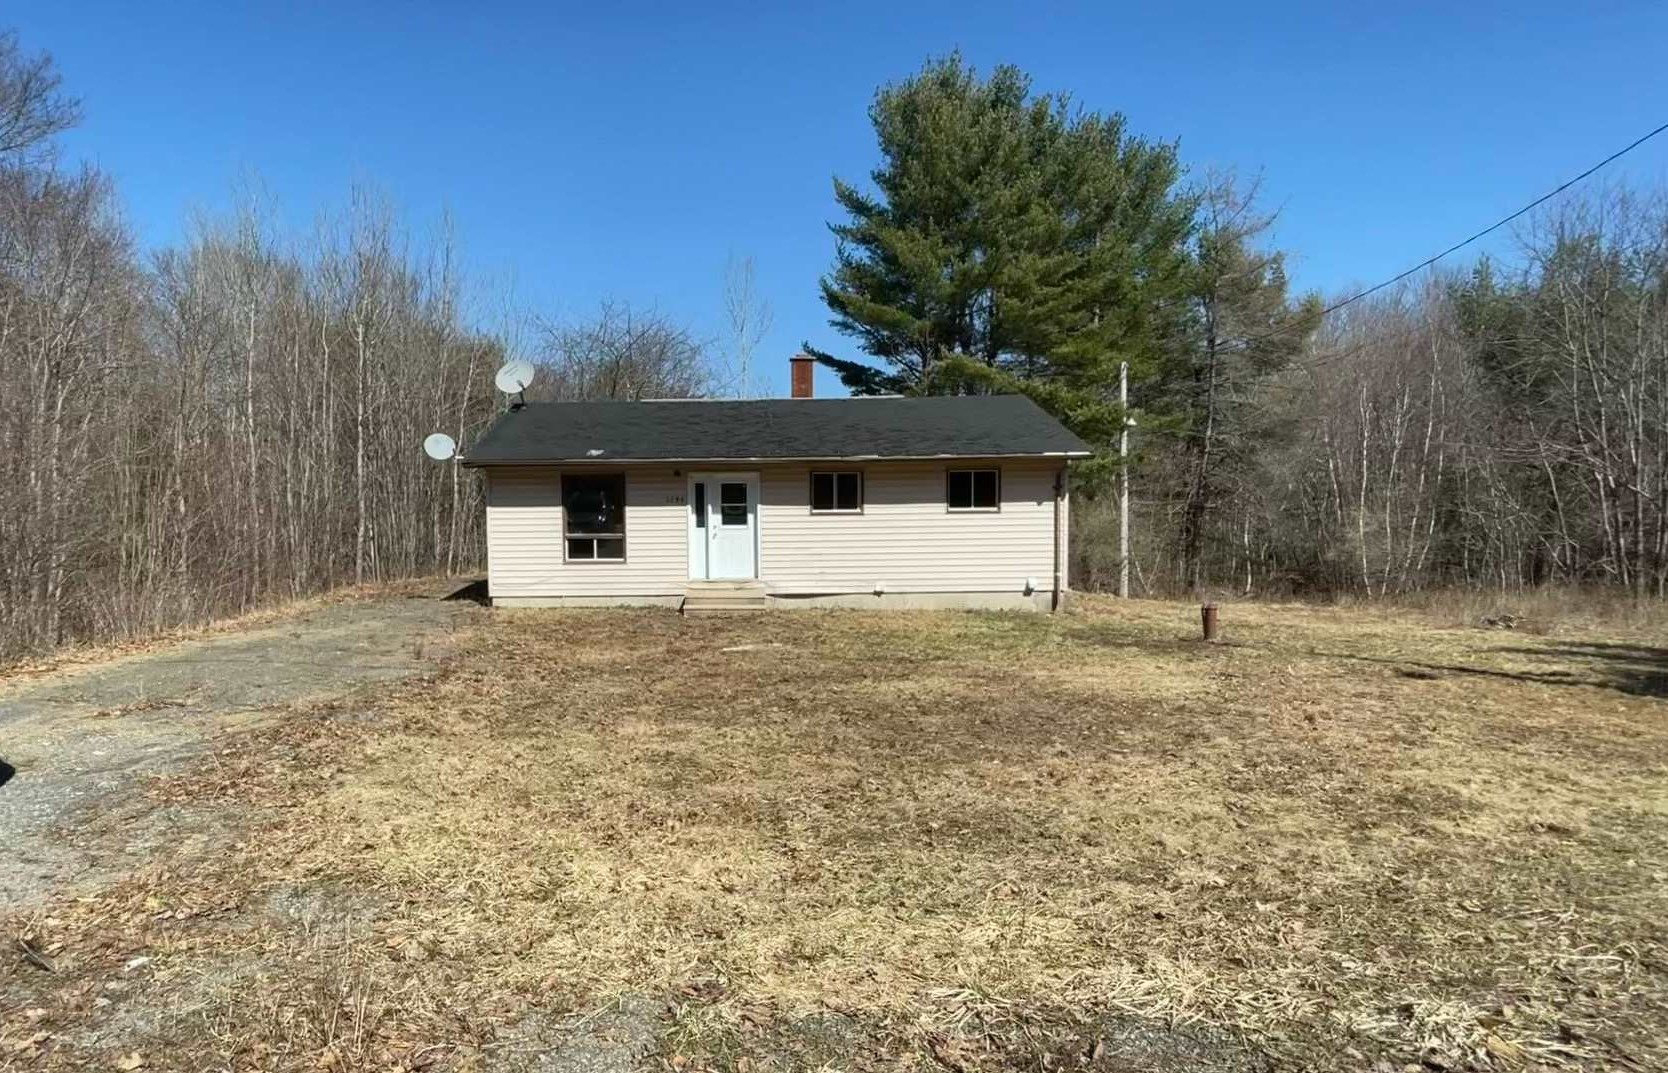 Main Photo: 1136 Highway 8 in Maitland Bridge: 400-Annapolis County Residential for sale (Annapolis Valley)  : MLS®# 202106865